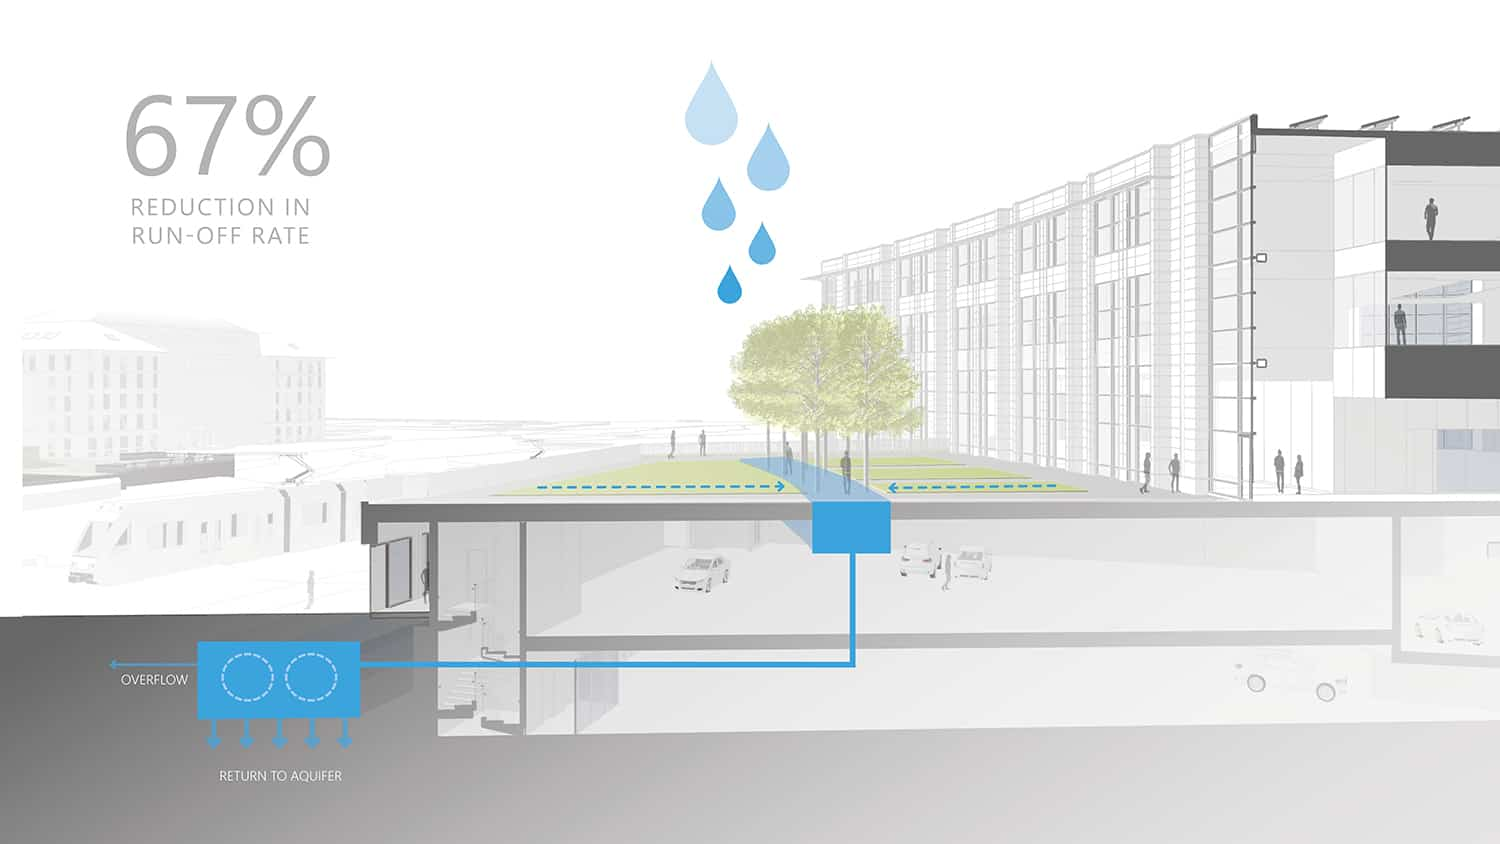 A section diagram of reduction in stormwater run-off rate.